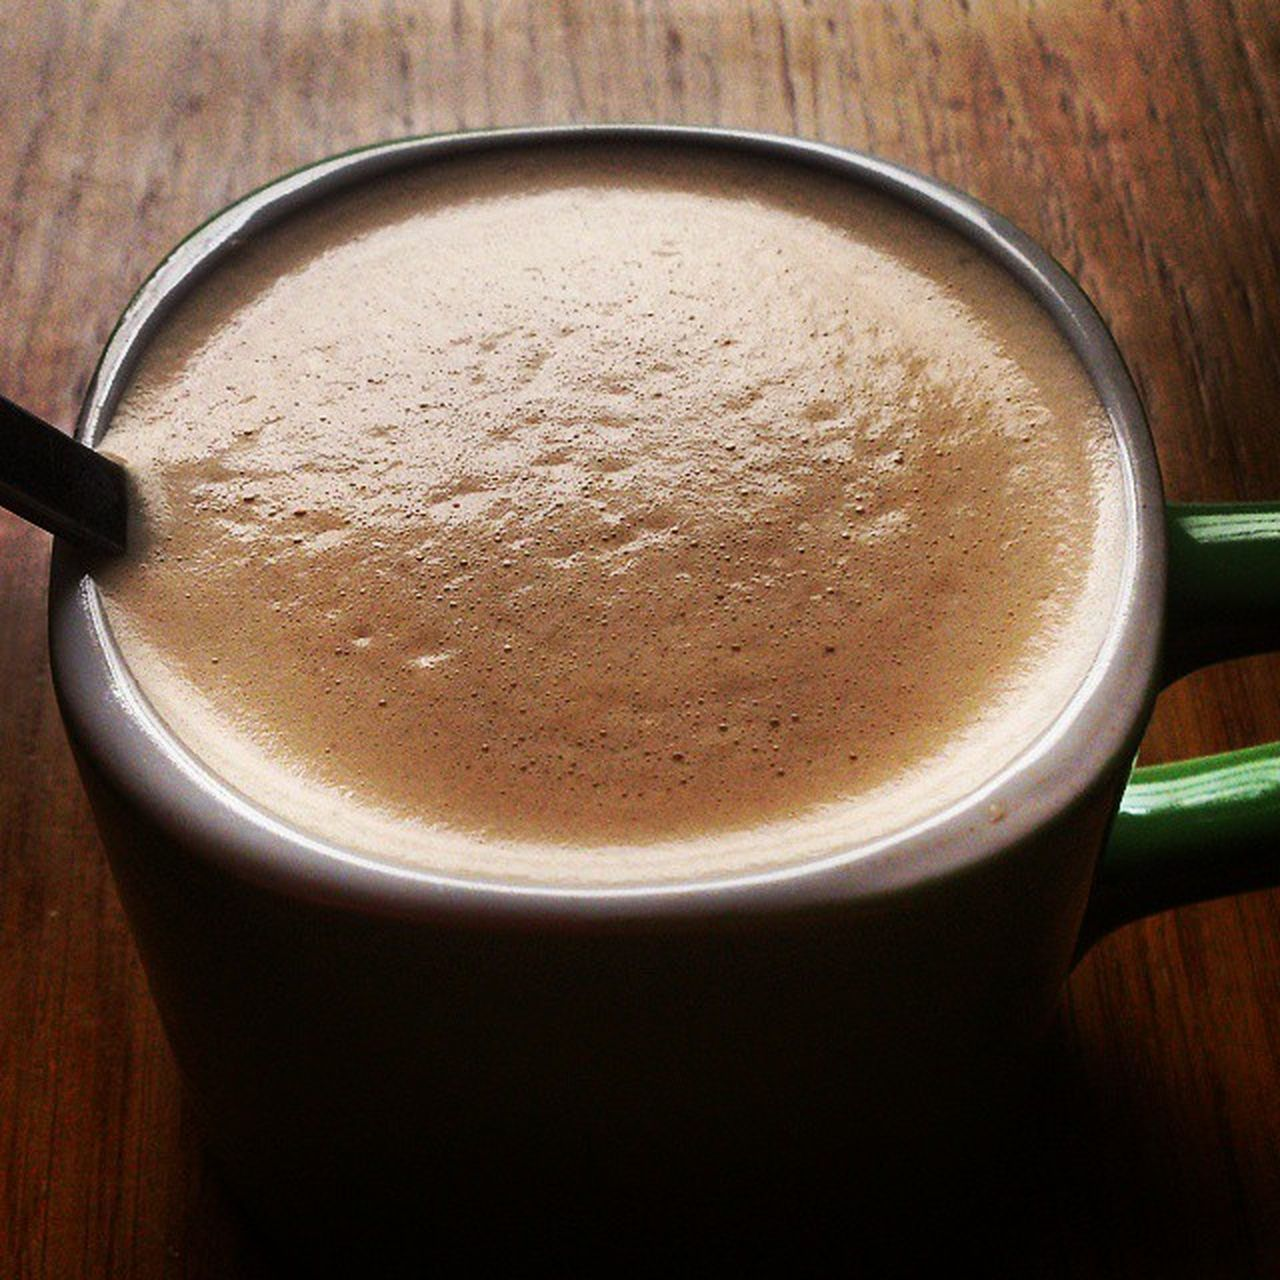 drink, coffee - drink, food and drink, coffee cup, refreshment, frothy drink, freshness, table, froth, indoors, close-up, cappuccino, no people, brown, bubble, latte, froth art, healthy eating, food, mocha, thick, day